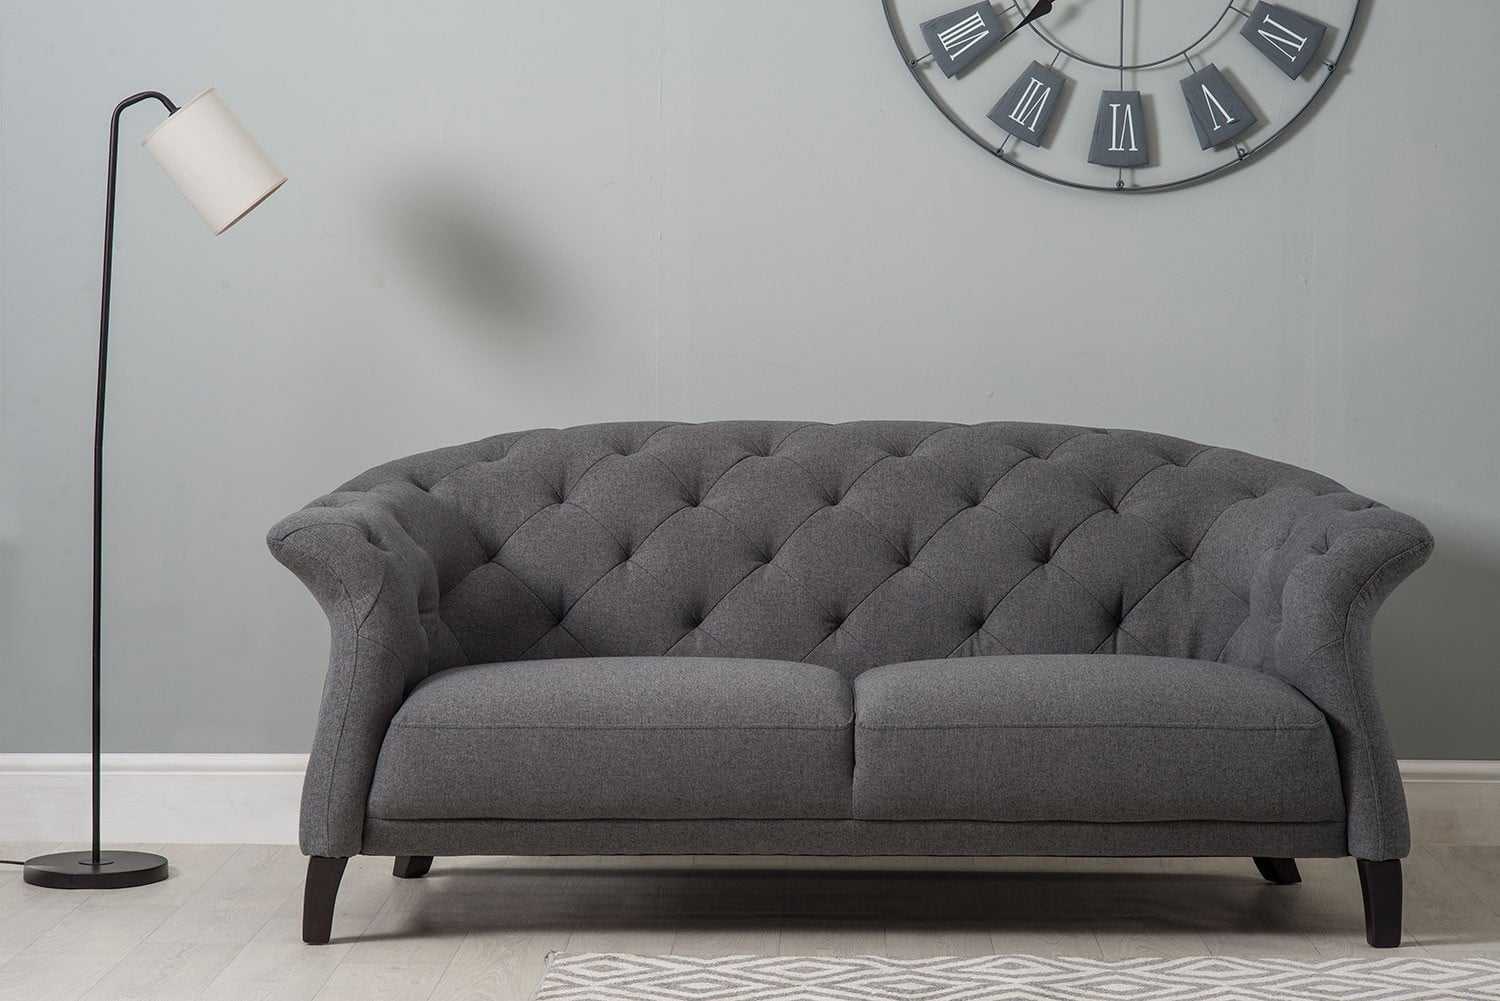 Halifax Inspirational Sofa Bed Online Furniture Store In Uk Inspiration Found